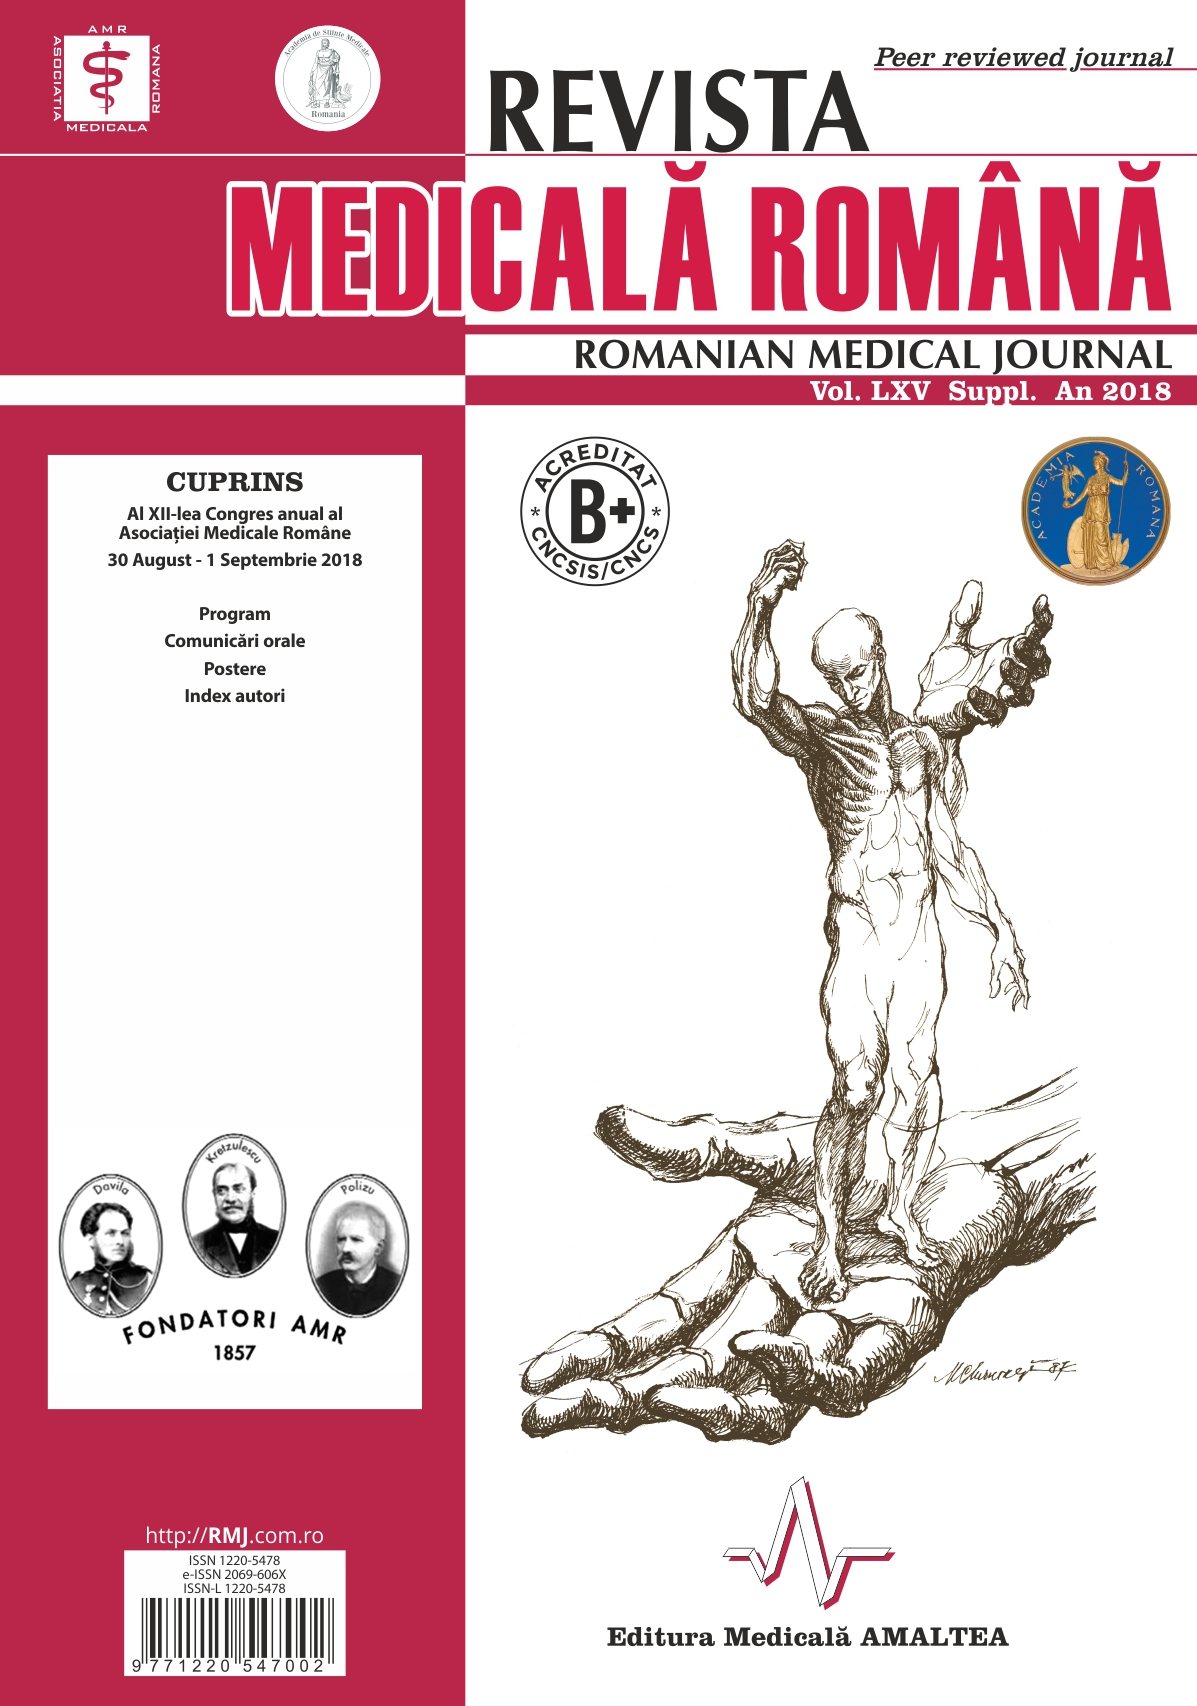 REVISTA MEDICALA ROMANA - Romanian Medical Journal, Vol. LXV, No. S, Year 2018